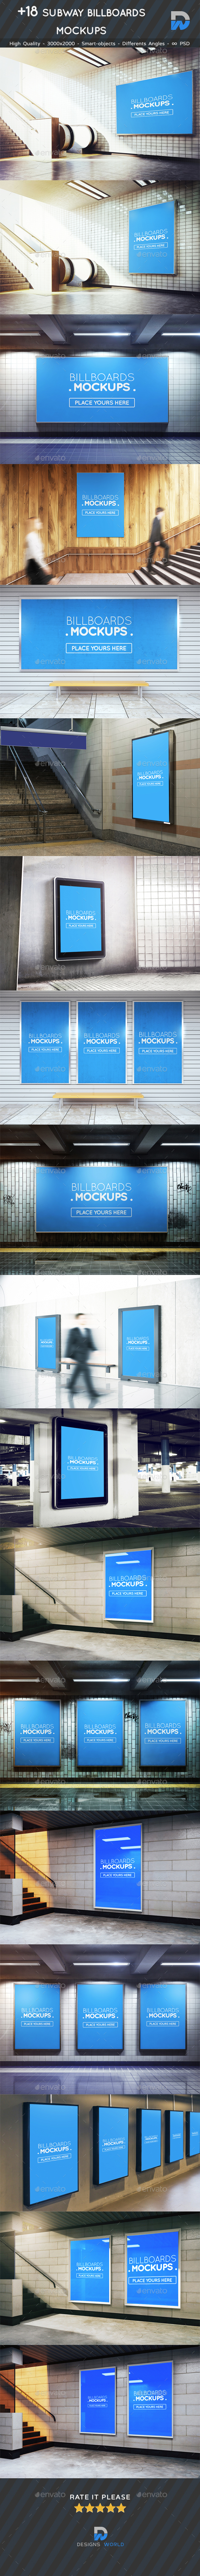 GraphicRiver &18 Subway Billboards Mockups 20622661